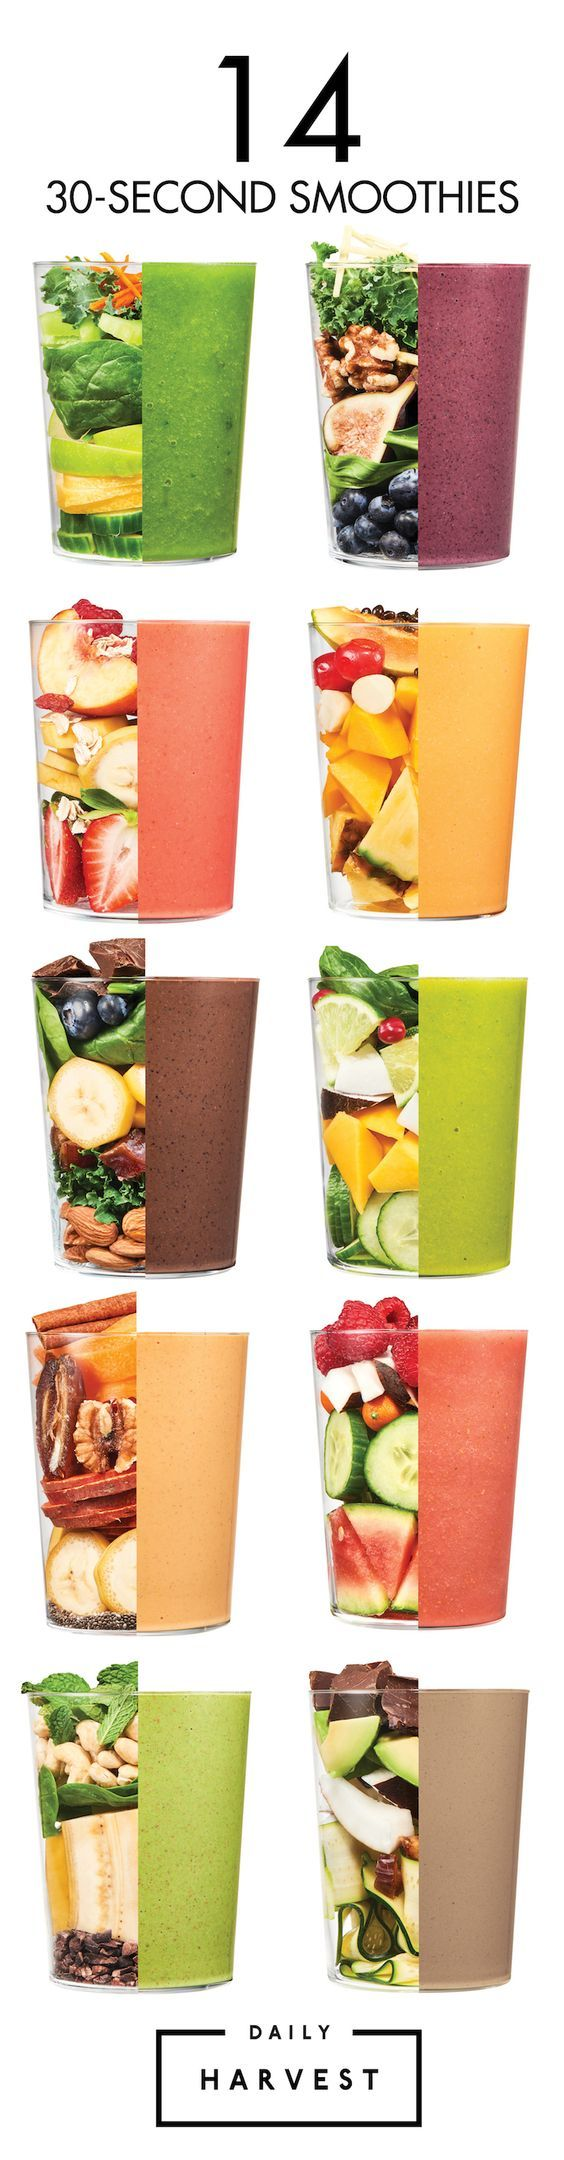 Want delicious healthy smoothies without all the fuss? Daily Harvest delivers frozen prepackaged smoothies straight to your door all you have to do is blend and enjoy. Available in 14 yummy flavors each one packed to the brim with superfoods. Flexible delivery plans FREE SHIPPING.